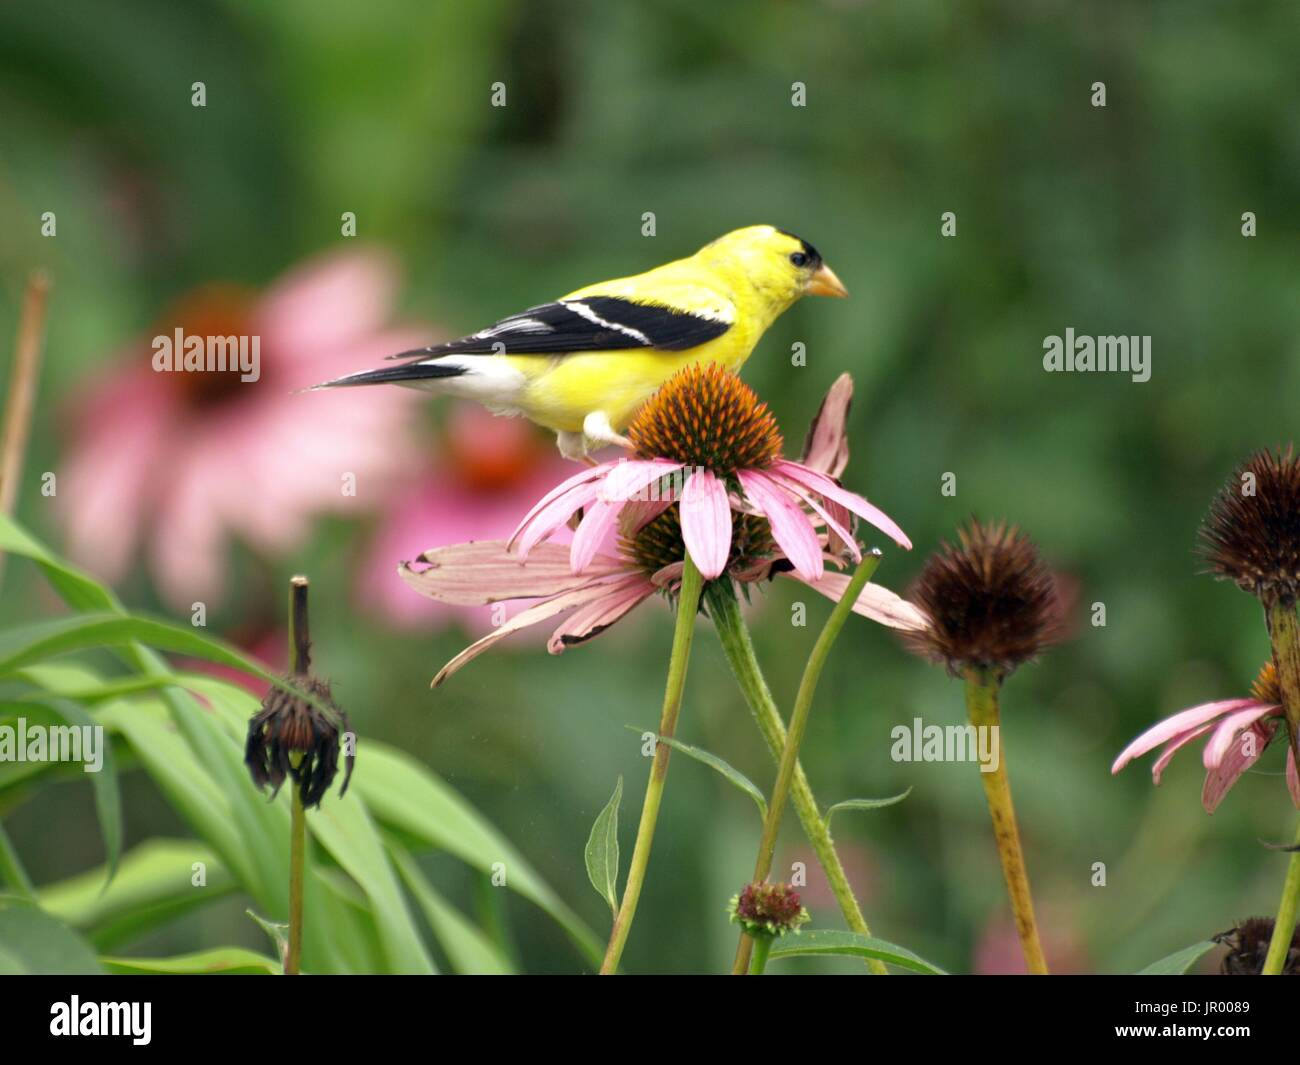 Brilliant goldfinch perched on pink cone flower stock photo brilliant goldfinch perched on pink cone flower mightylinksfo